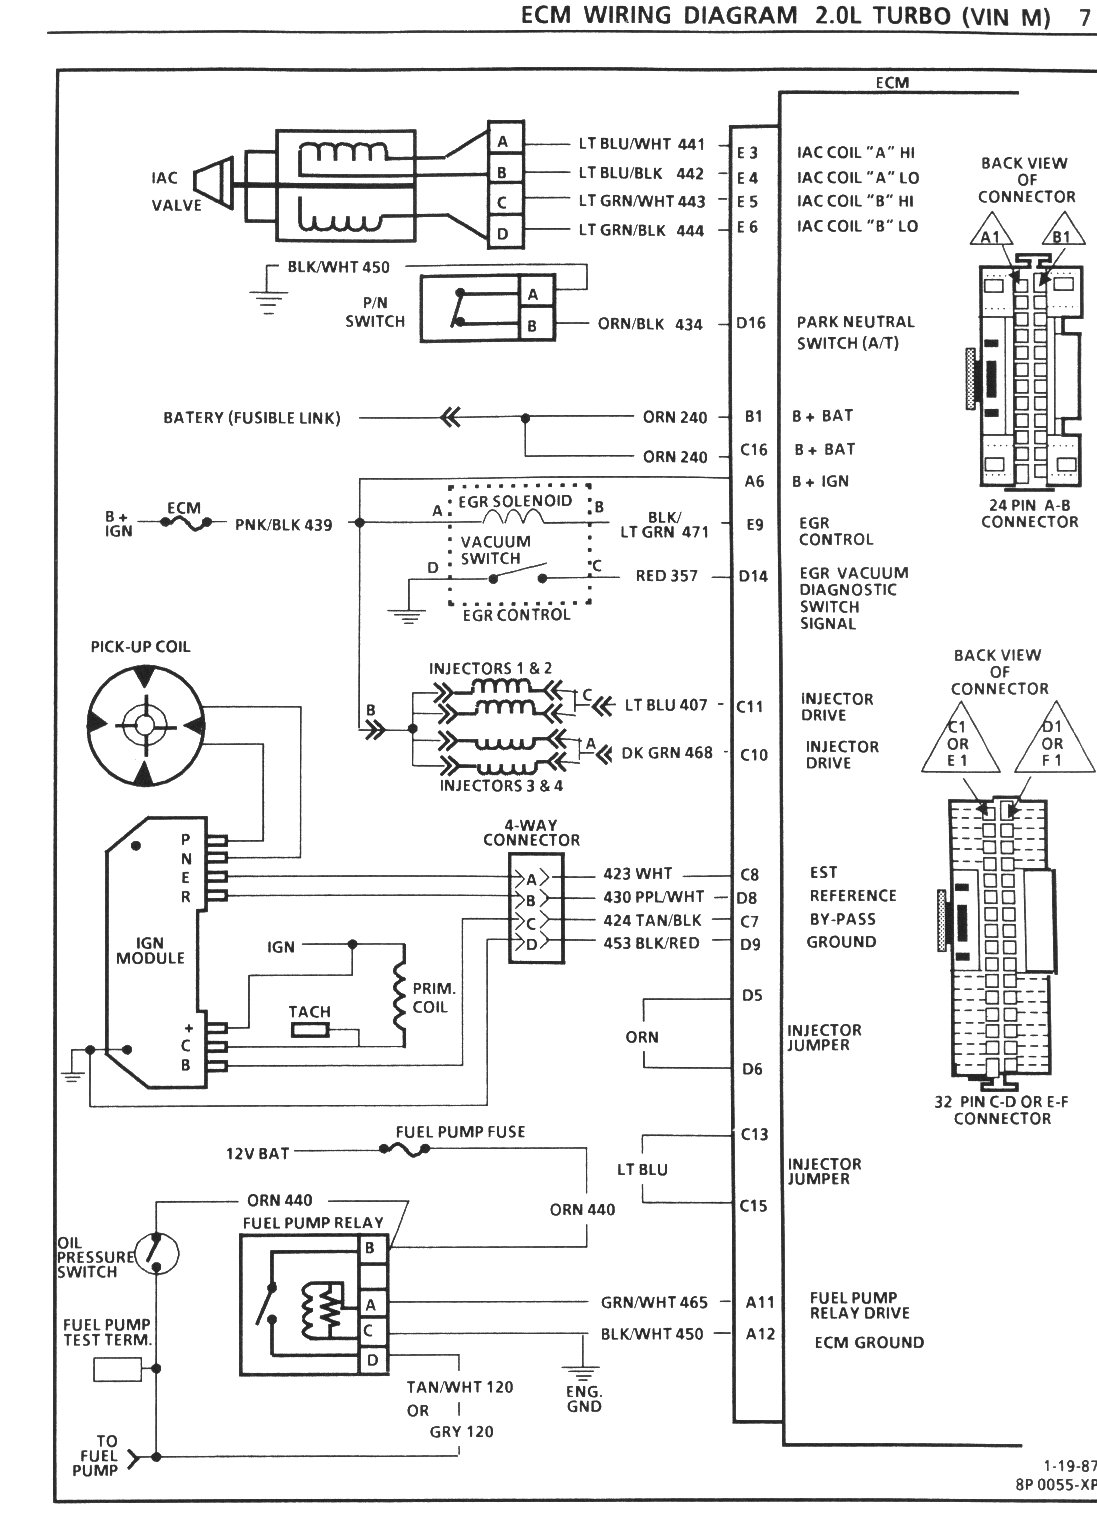 C 12 Cat Engine Diagram | Wiring Library